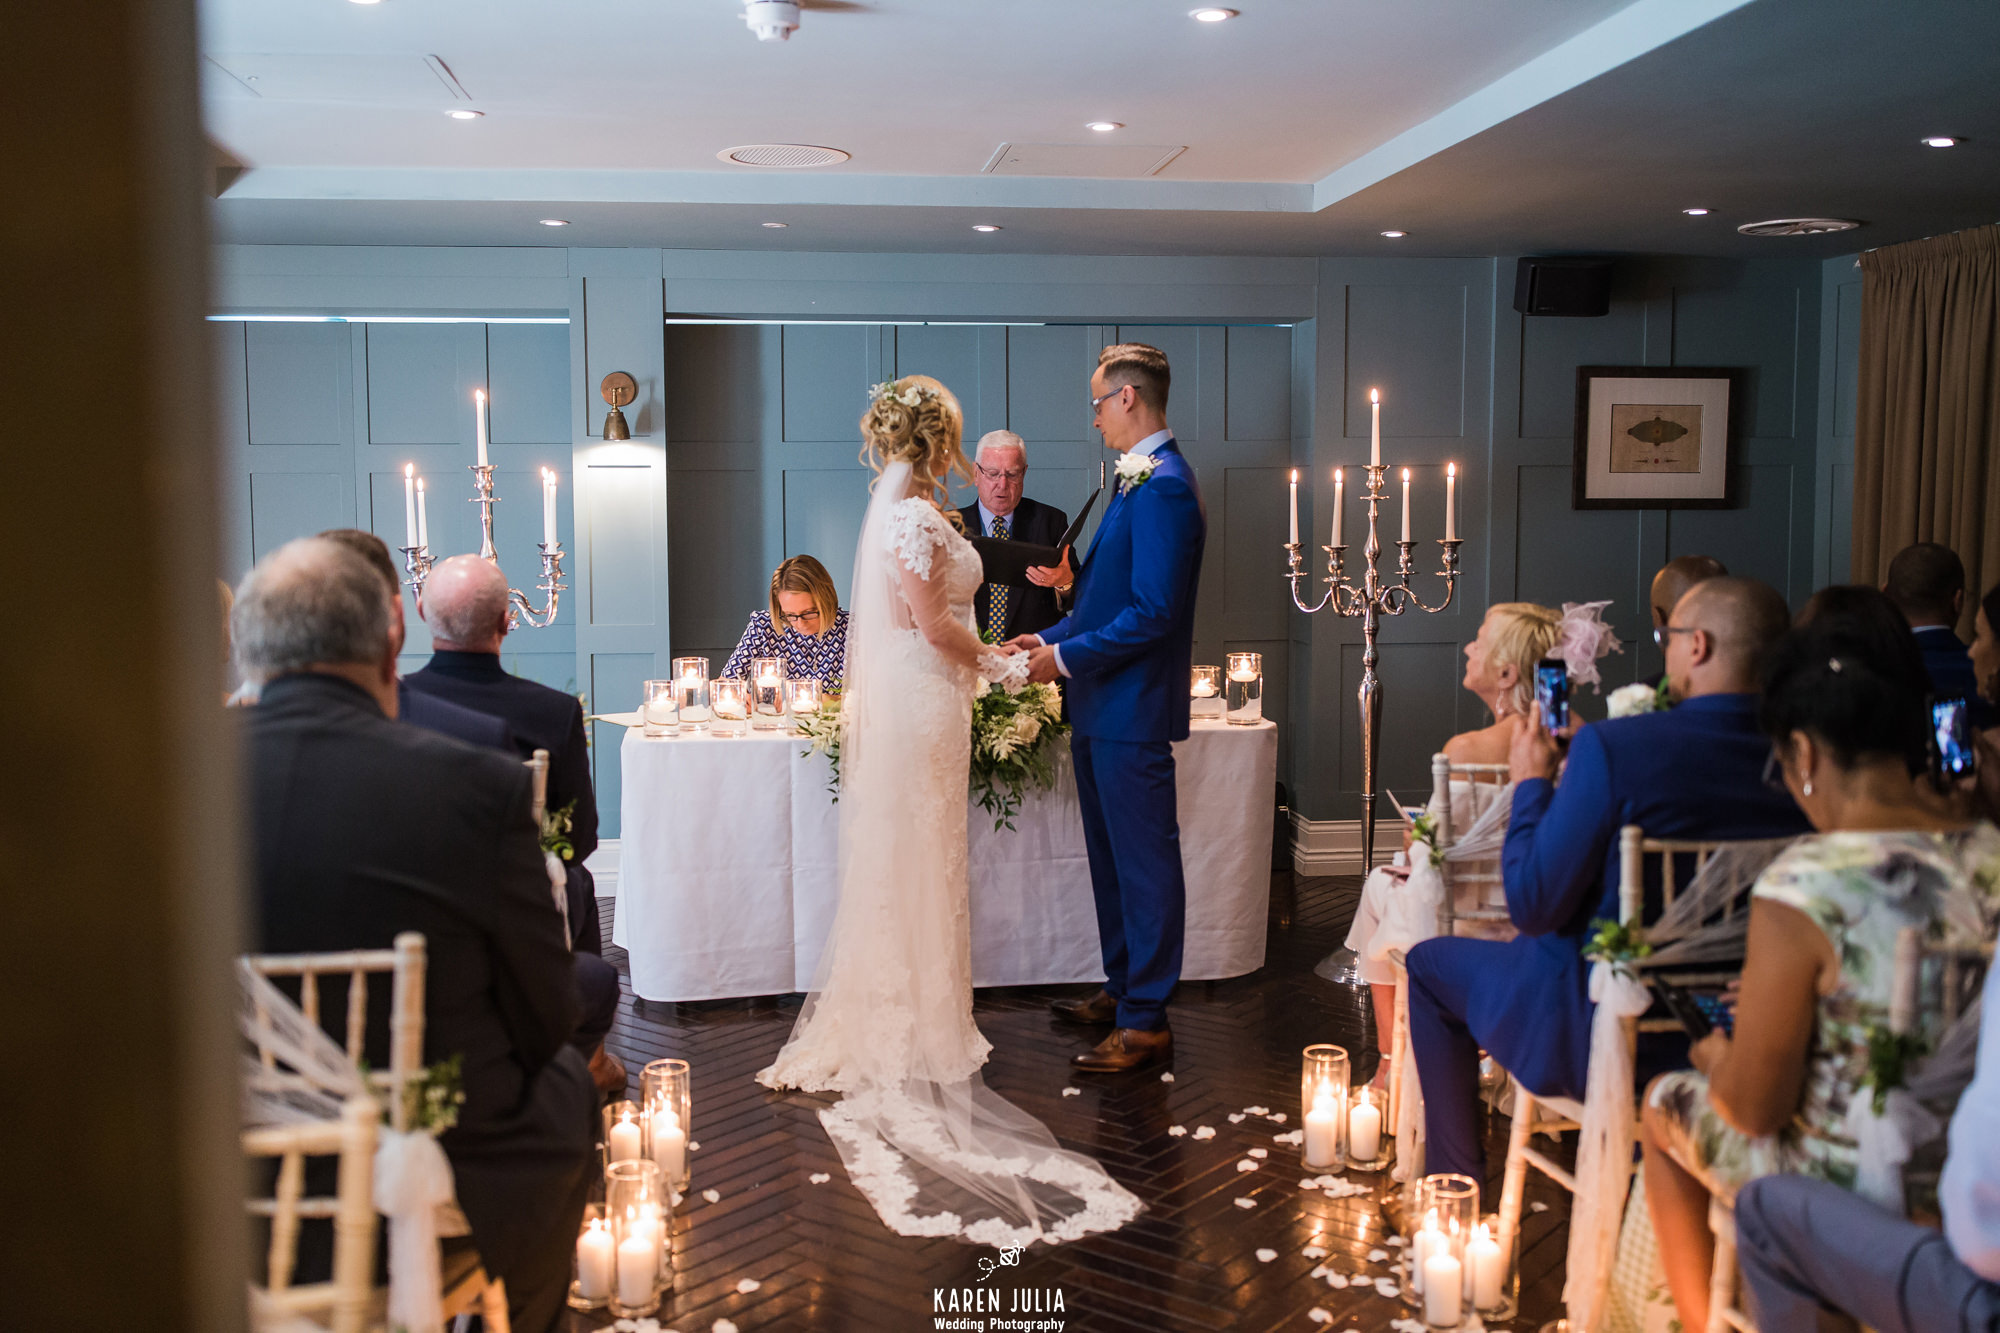 bride and groom exchange vows during wedding ceremony at King Street Townhouse